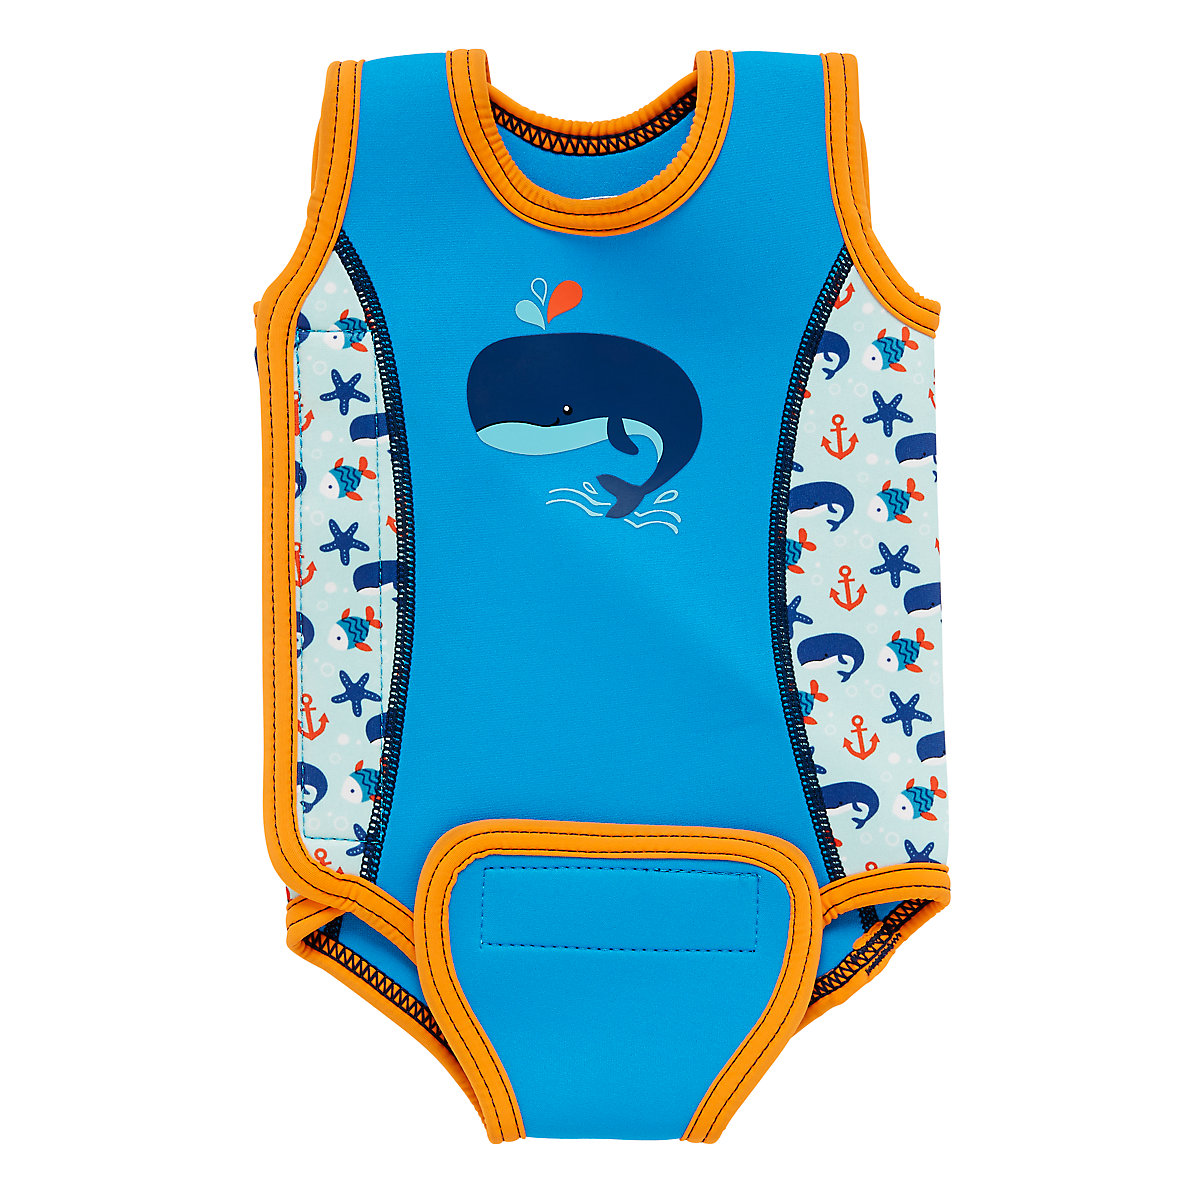 Image of Mothercare Baby Warmers Blue 36 Months